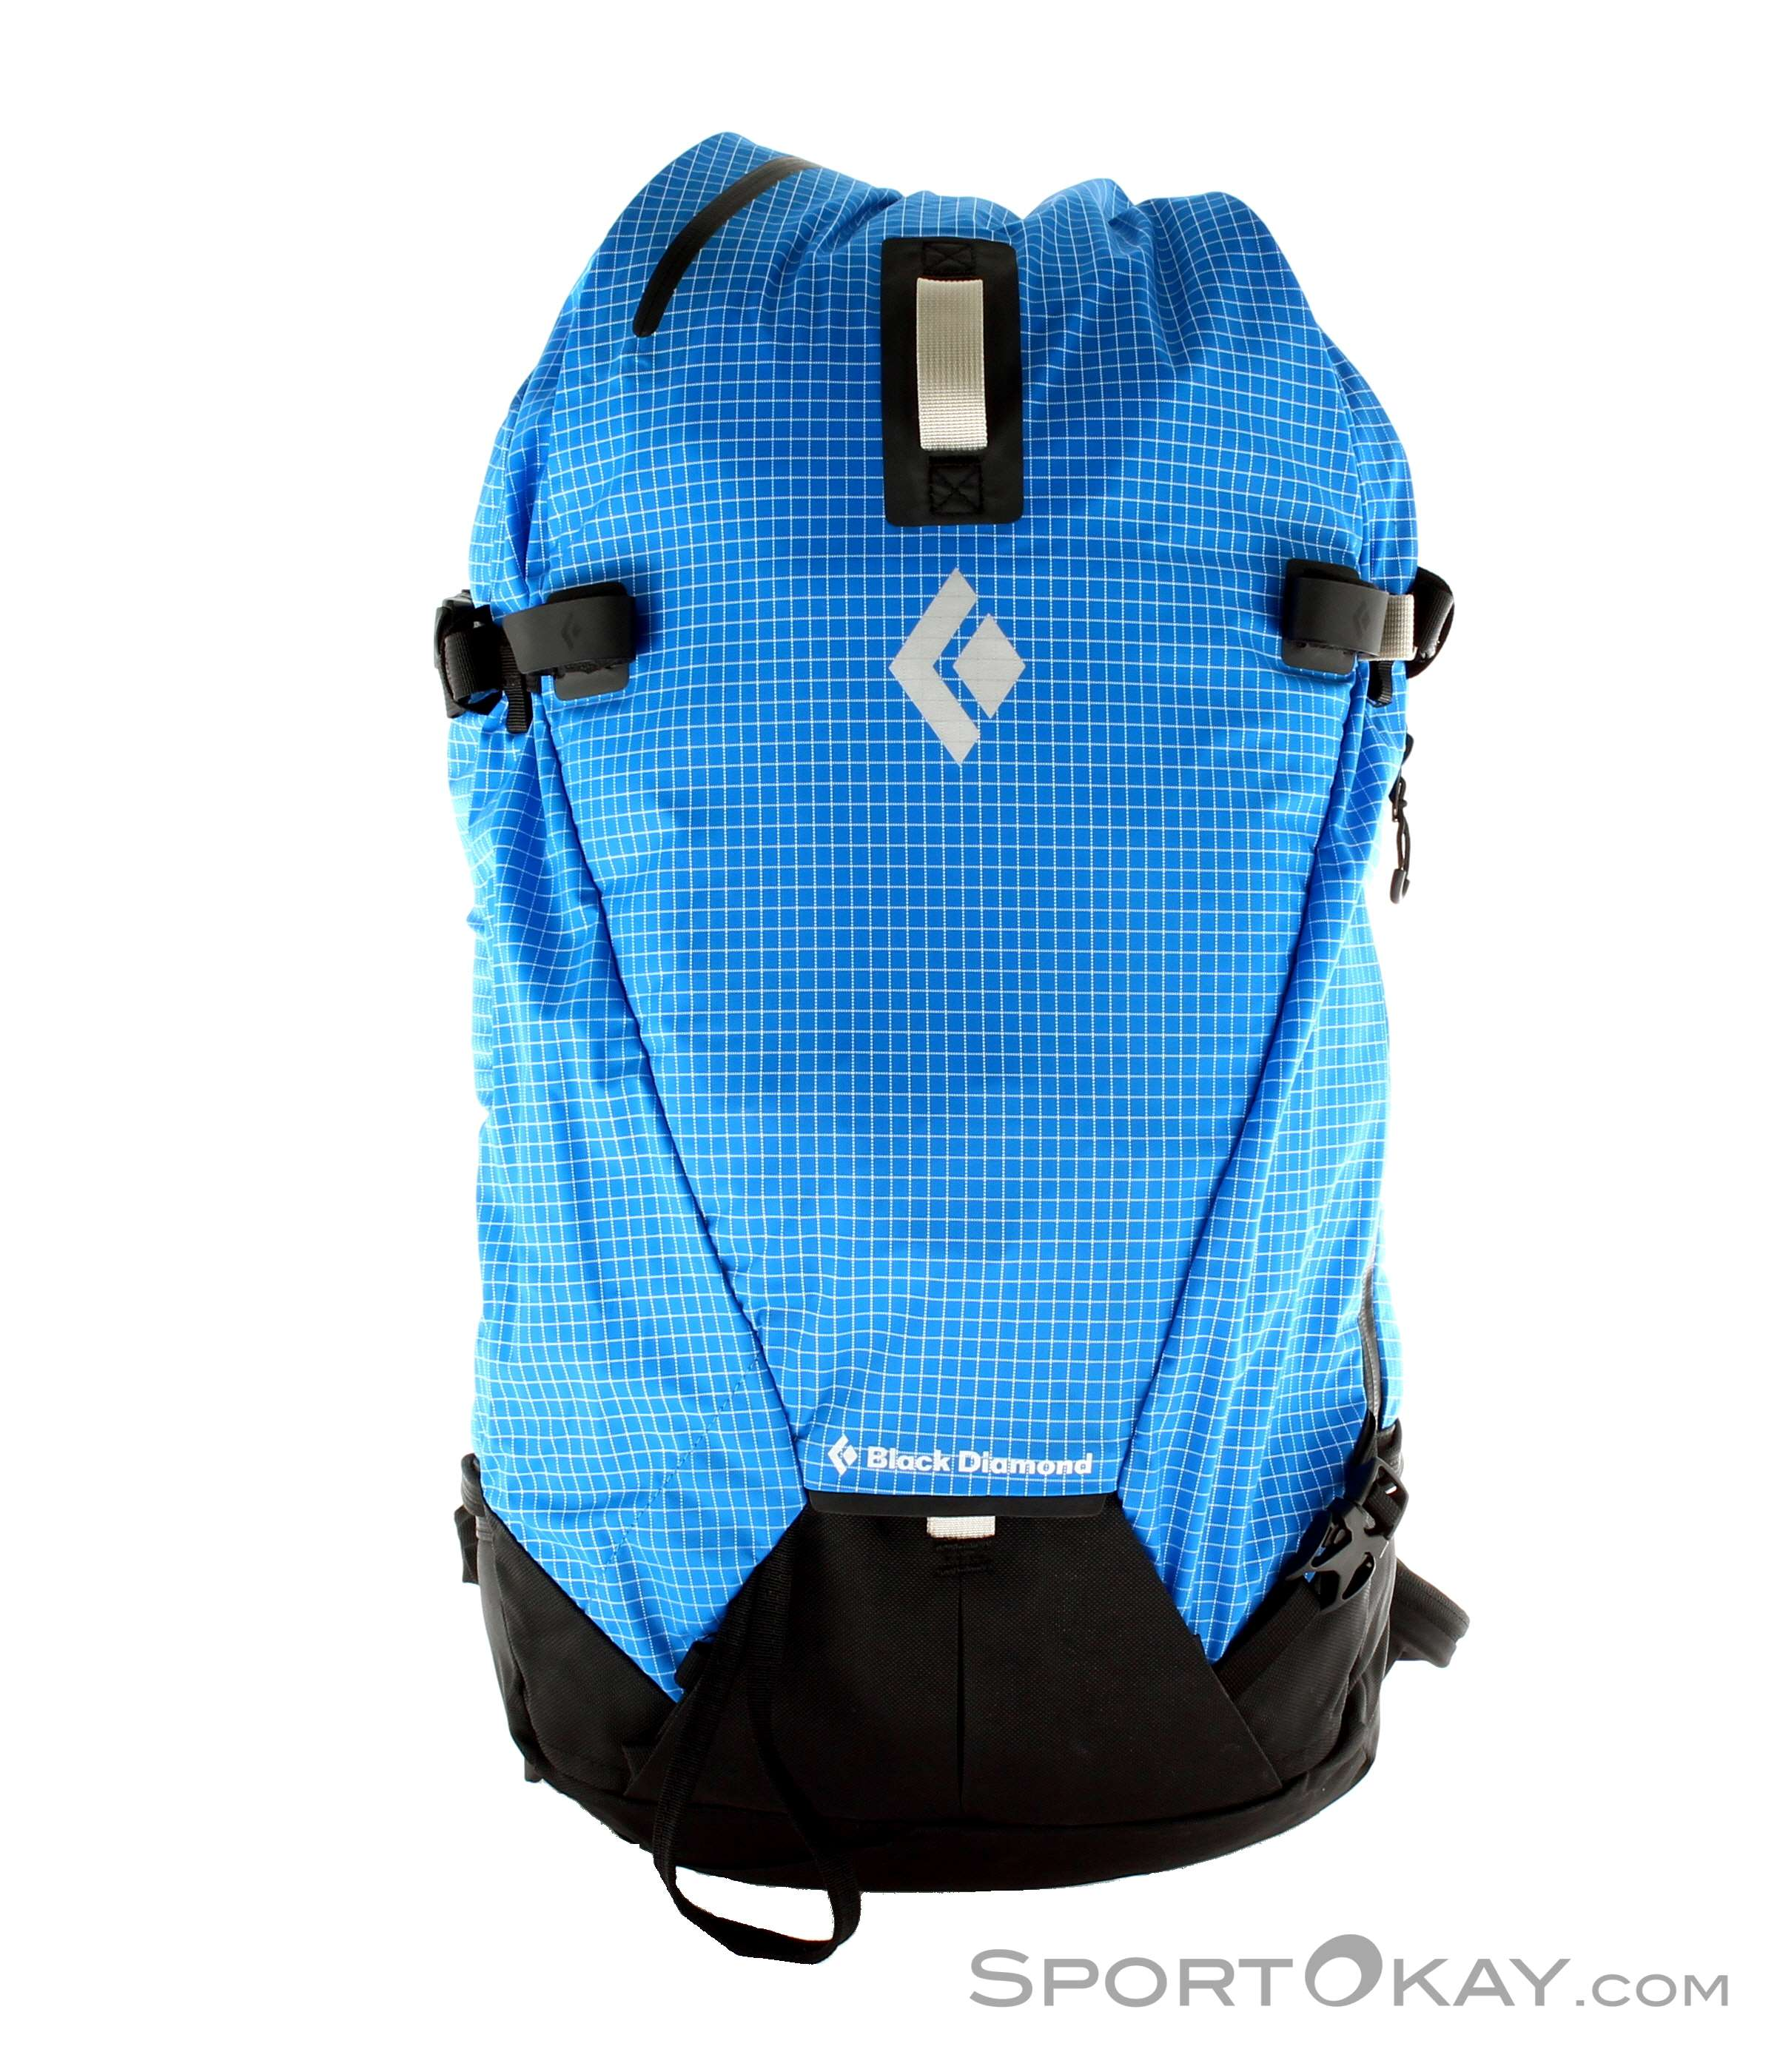 Black Diamond Cirque 35l Rucksack, Black Diamond, Blau, , Herren, 0056-10485, 5637510924, 793661308188, N1-01.jpg